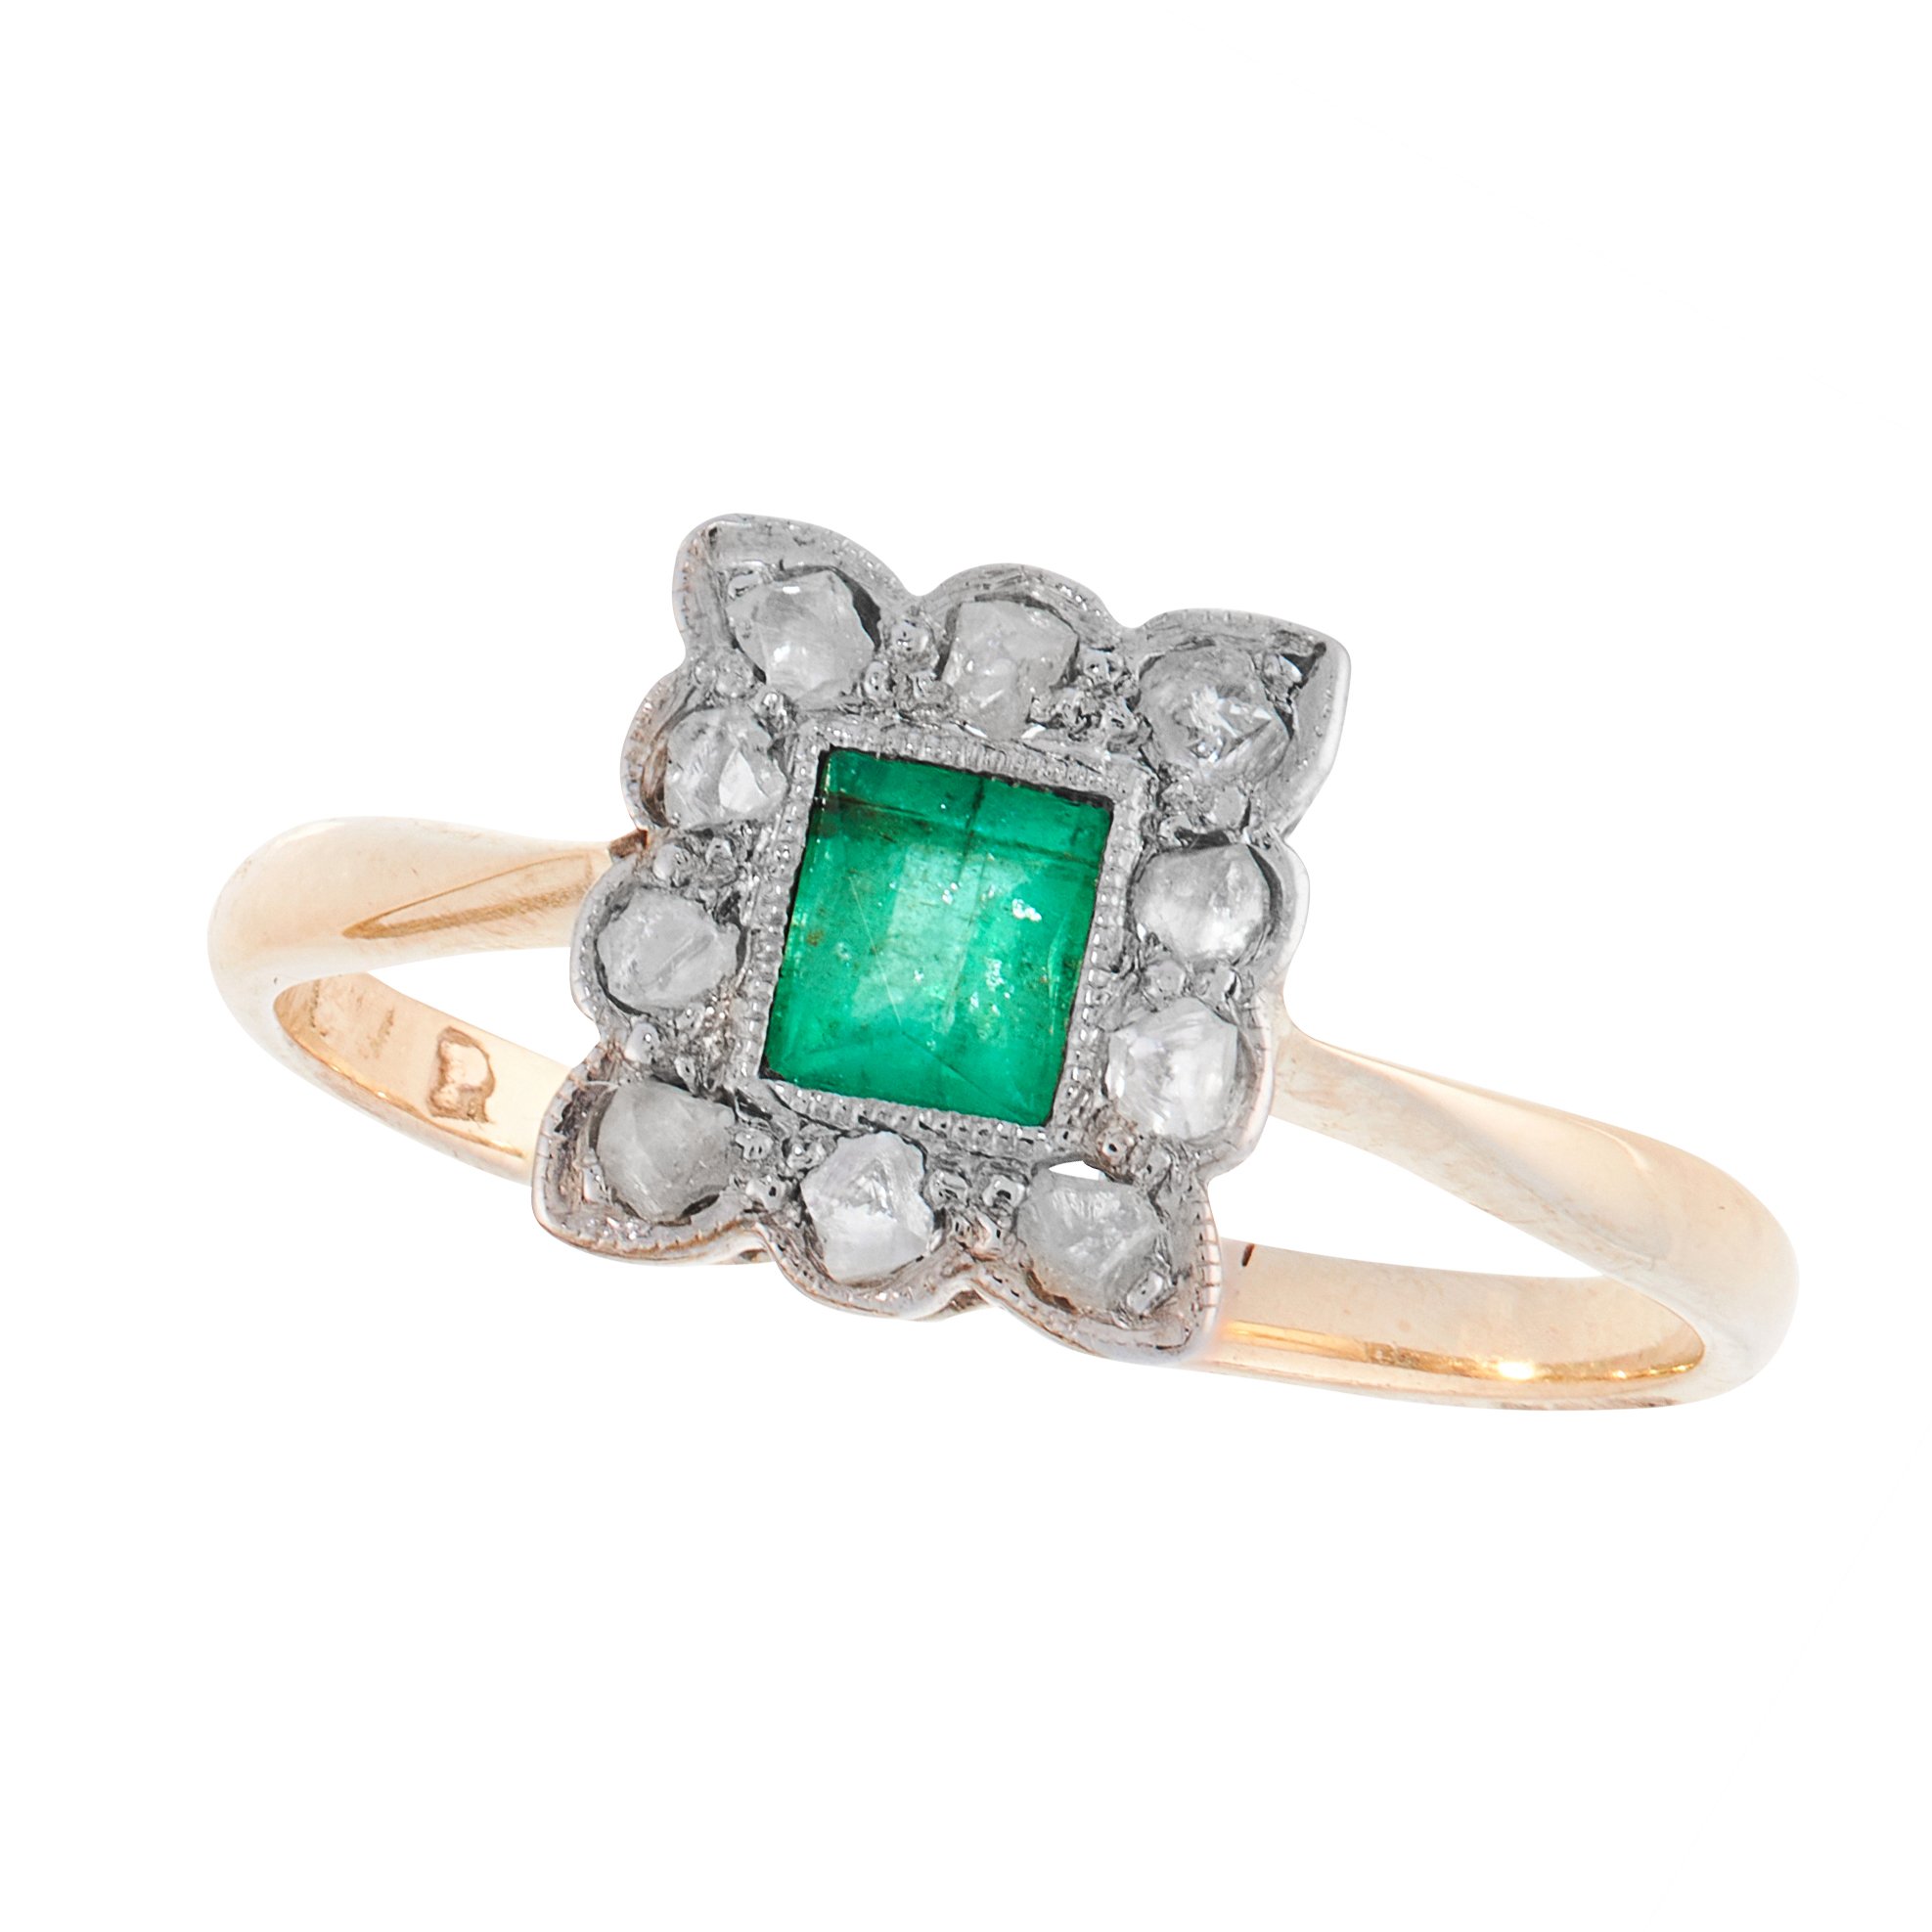 AN ART DECO EMERALD AND DIAMOND DRESS RING in 18ct yellow gold, set with a French cut emerald within